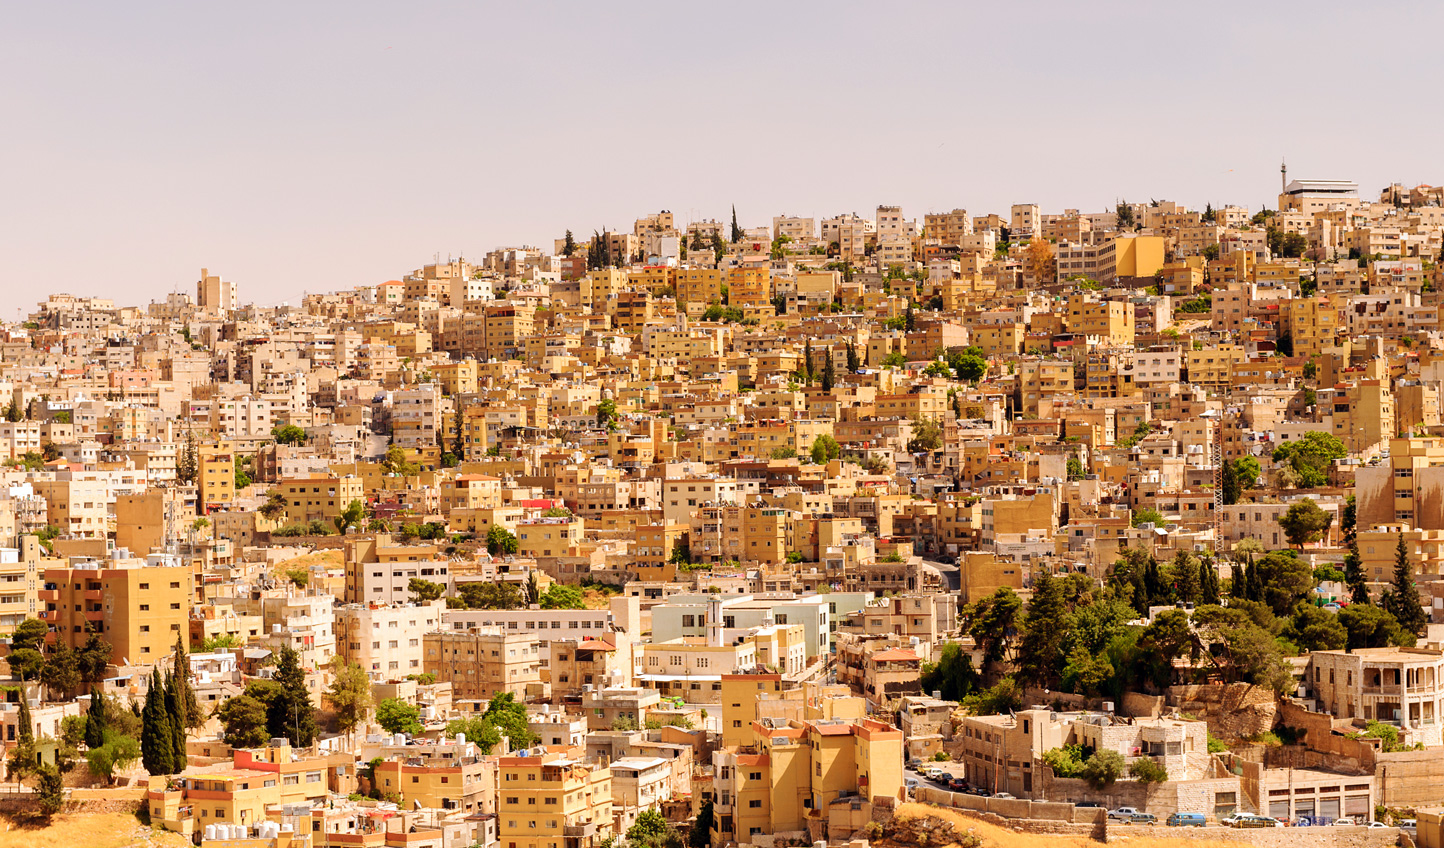 Discover the vibrant streets of Amman